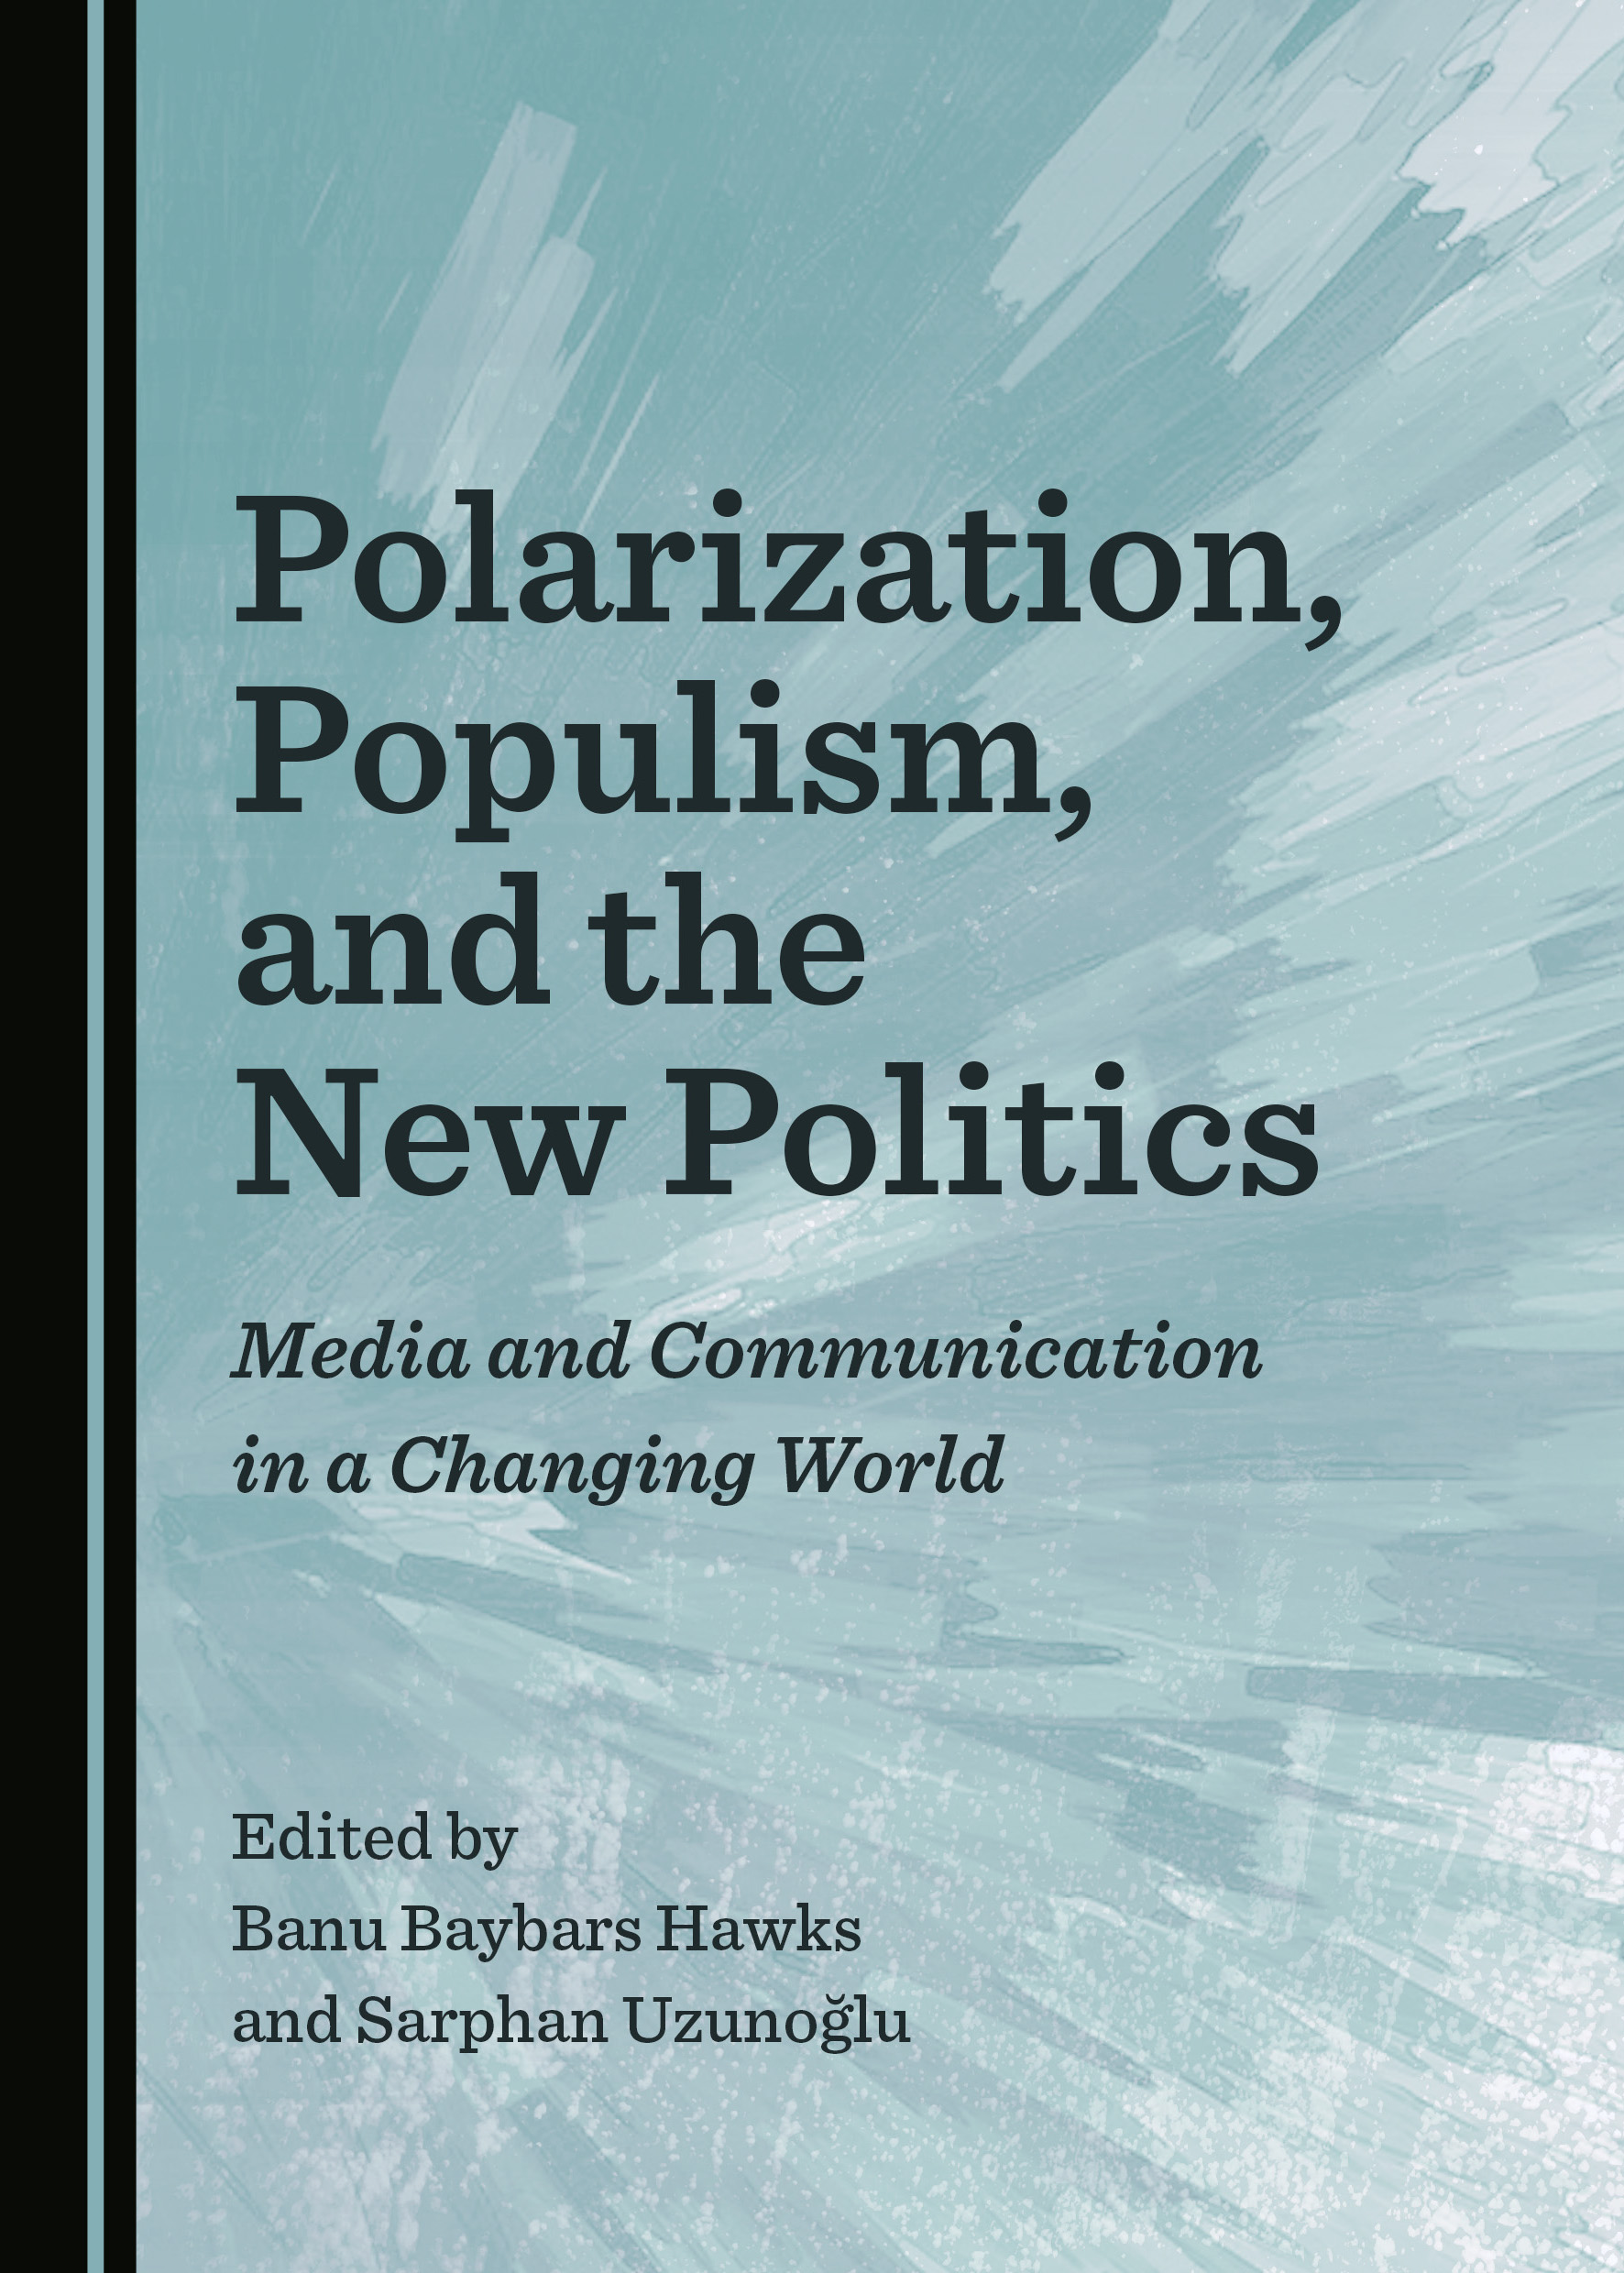 Polarization, Populism, and the New Politics: Media and Communication in a Changing World